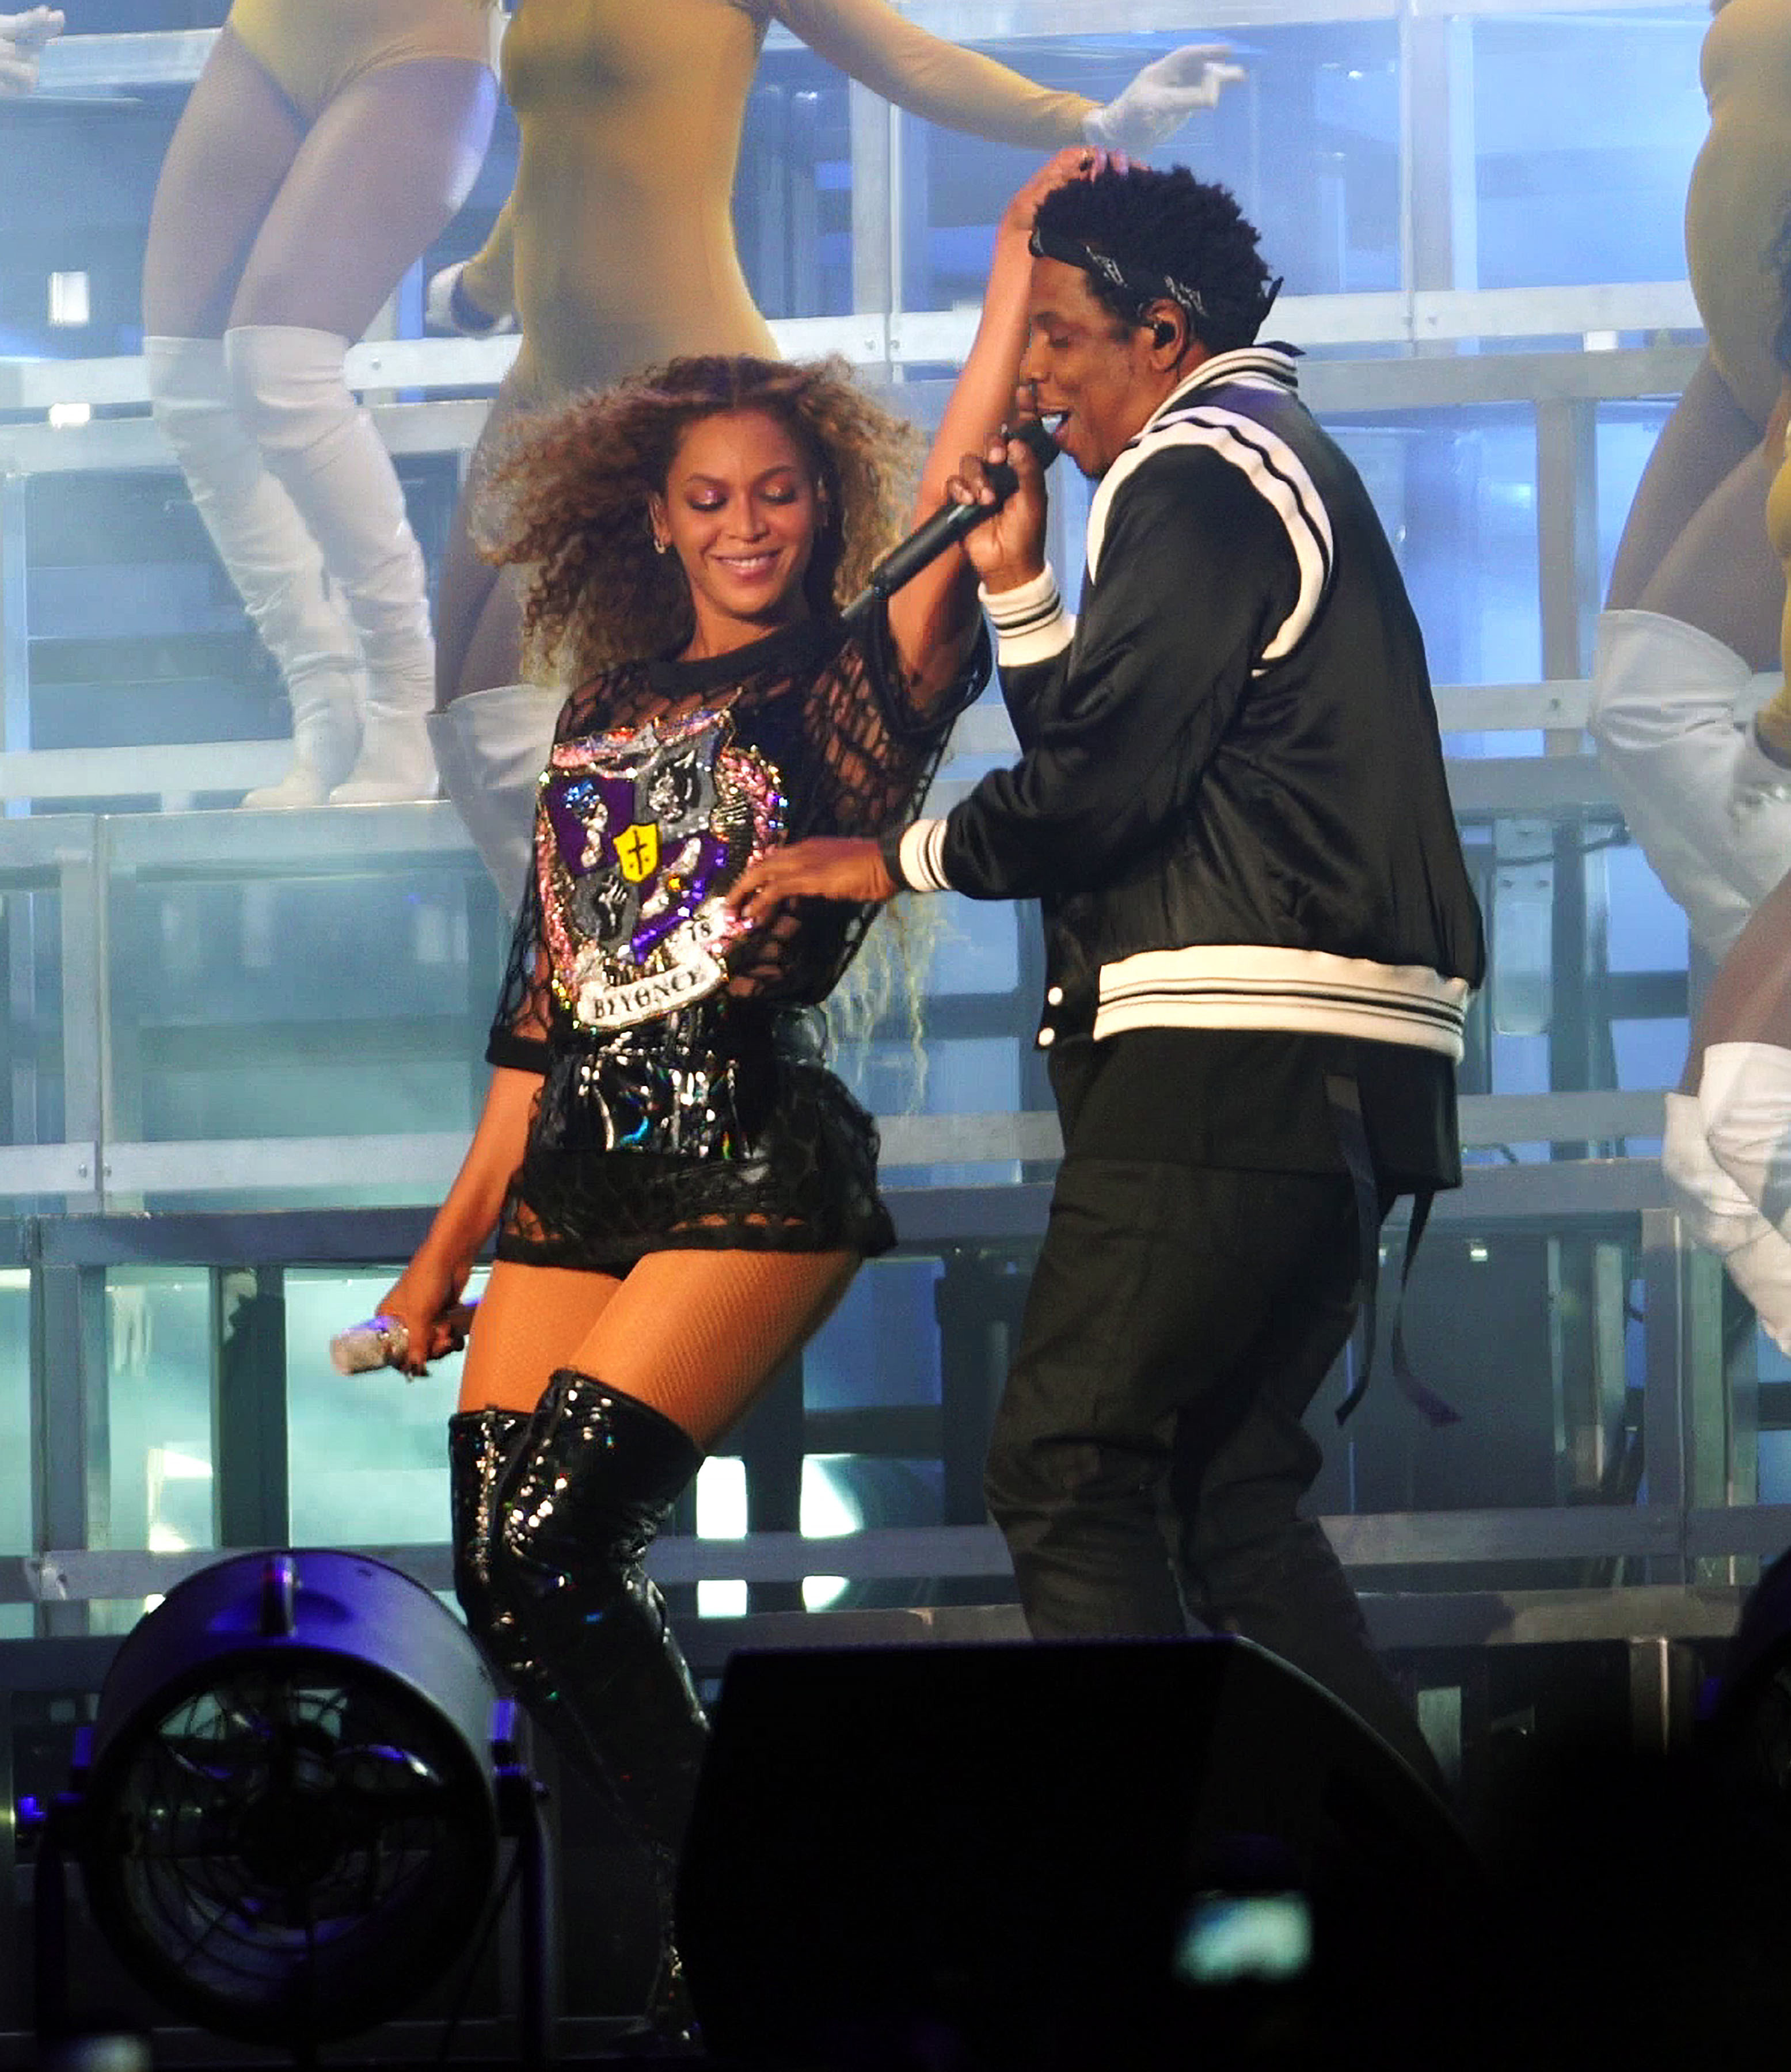 Beyonce and JAY Z perform during the Coachella Valley Music and Arts Festival at the Empire Polo Field in Indio, California, on April 14, 2018.